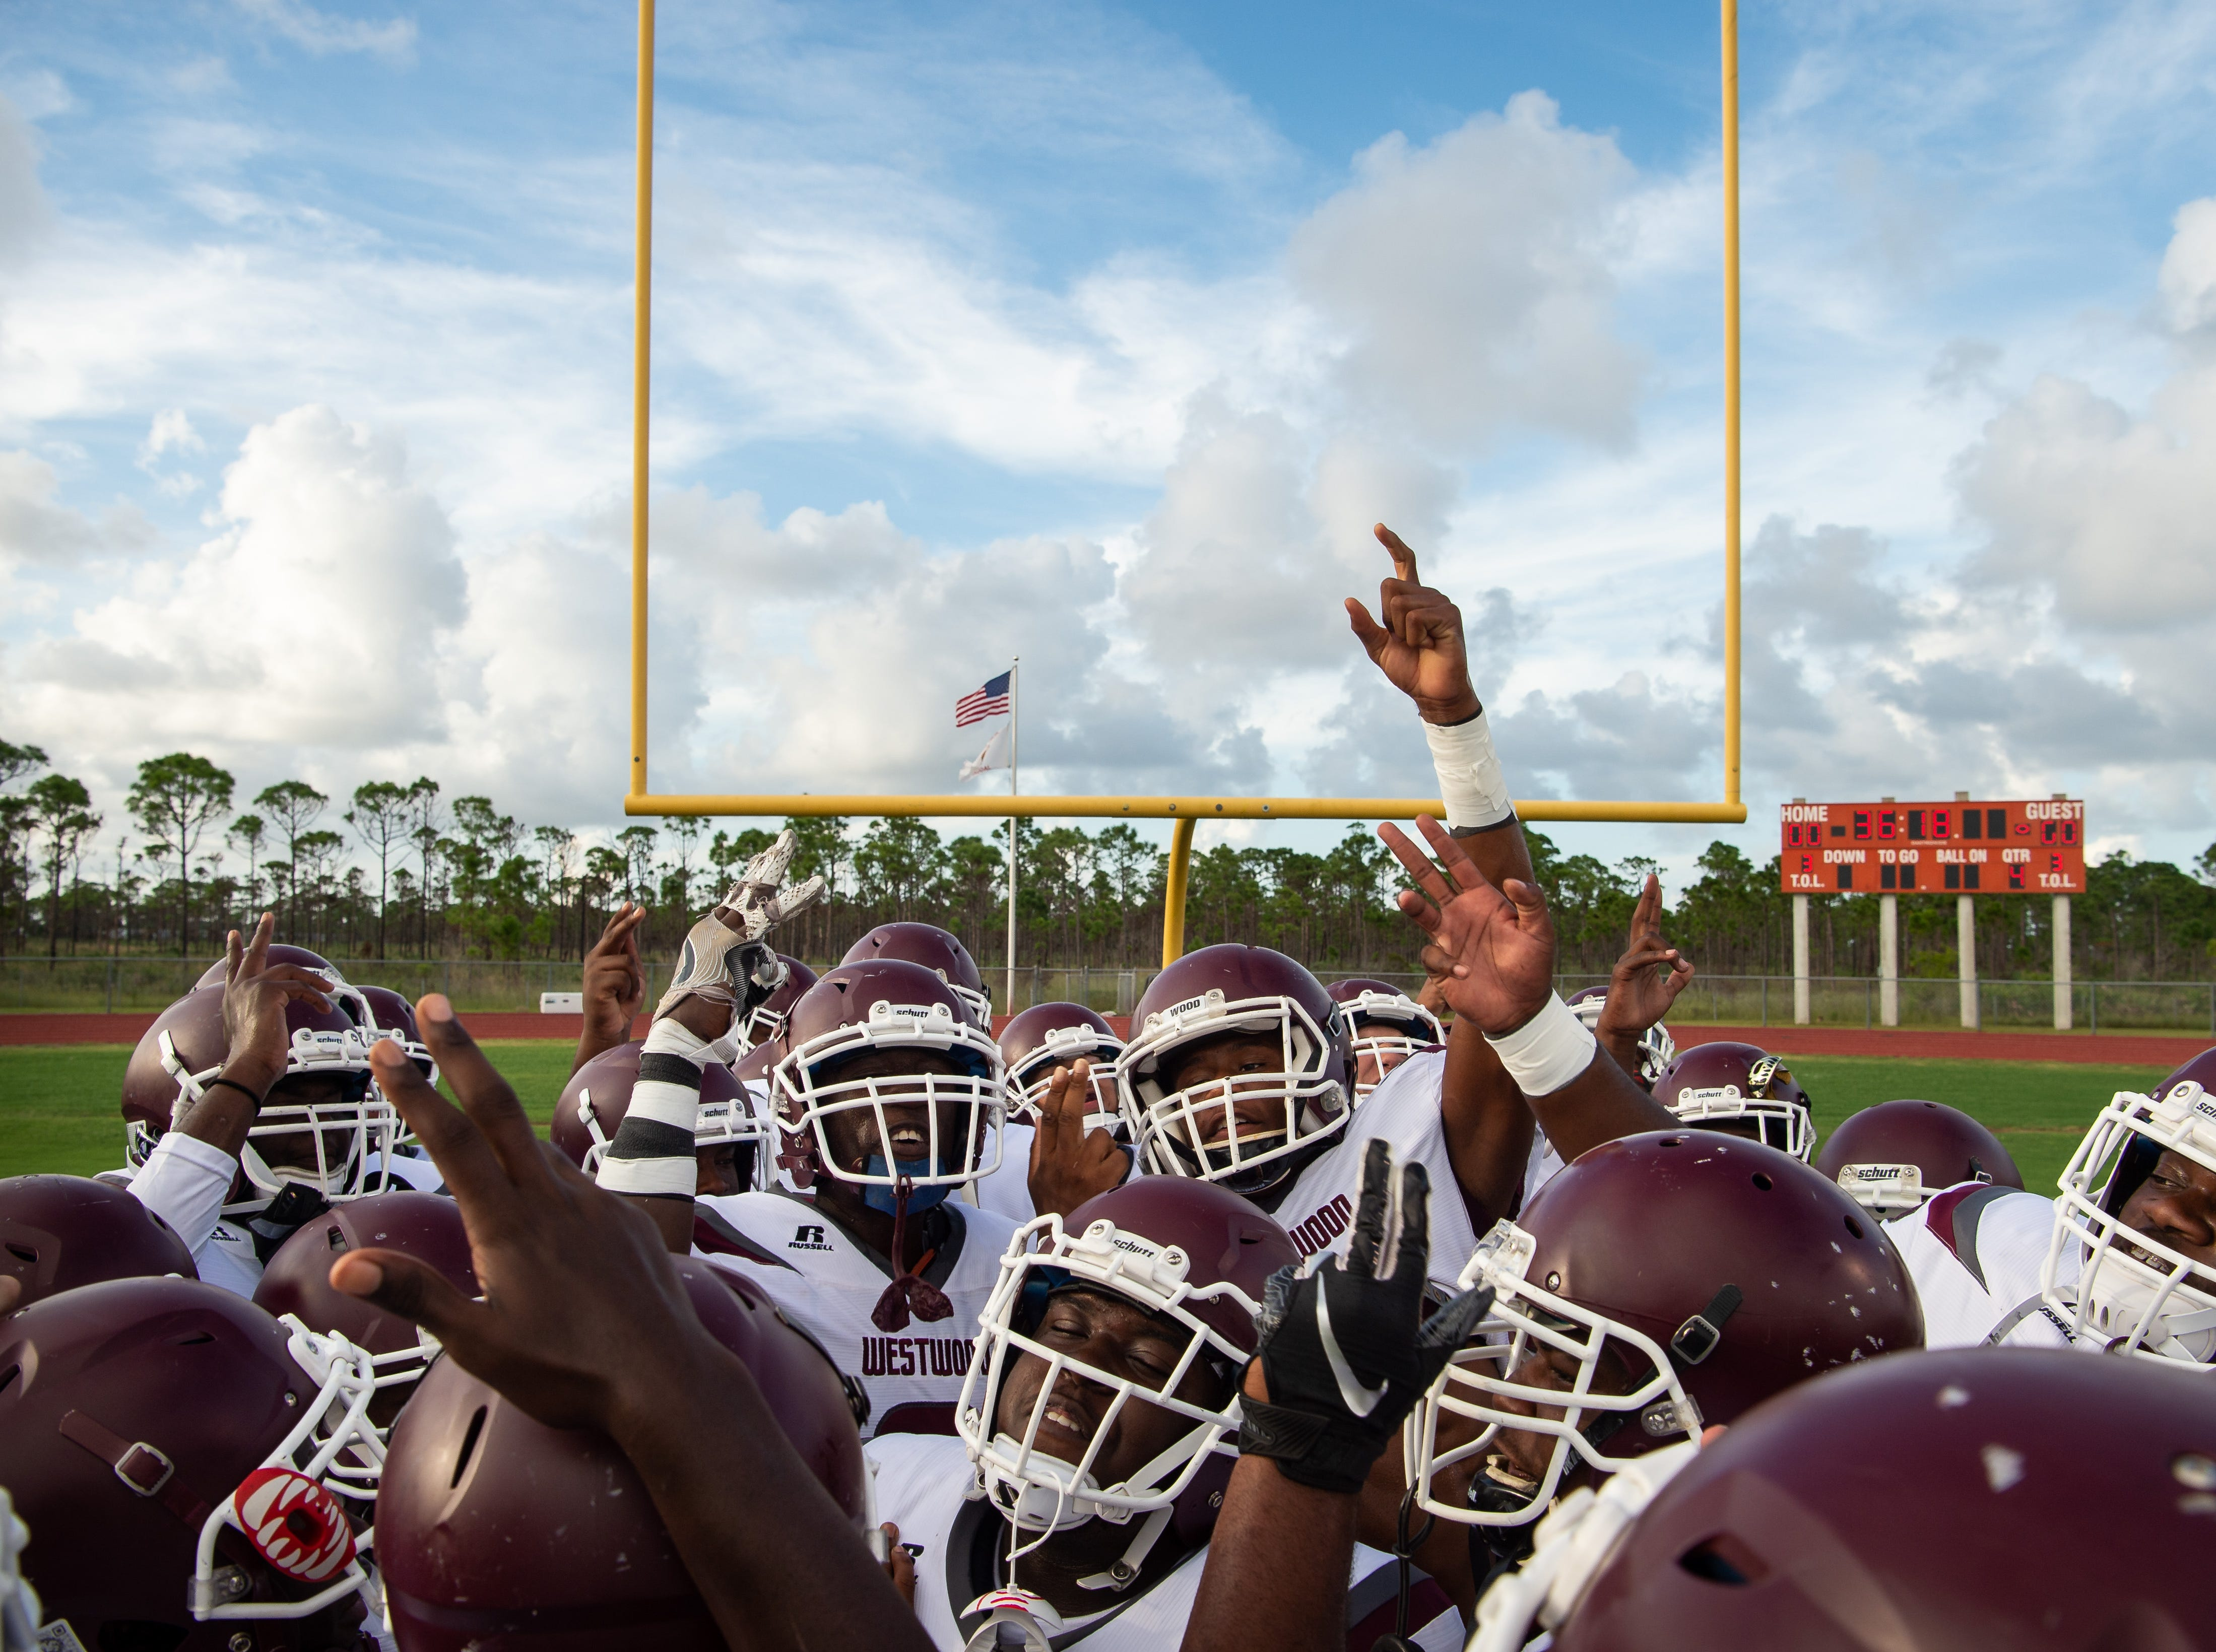 Fort Pierce Westwood's Willie Lewis (center) raises his arm and leads a chant for the team as they take the field to play Port St. Lucie during the high school football game Friday, Aug. 31, 2018, at Port St. Lucie High School.